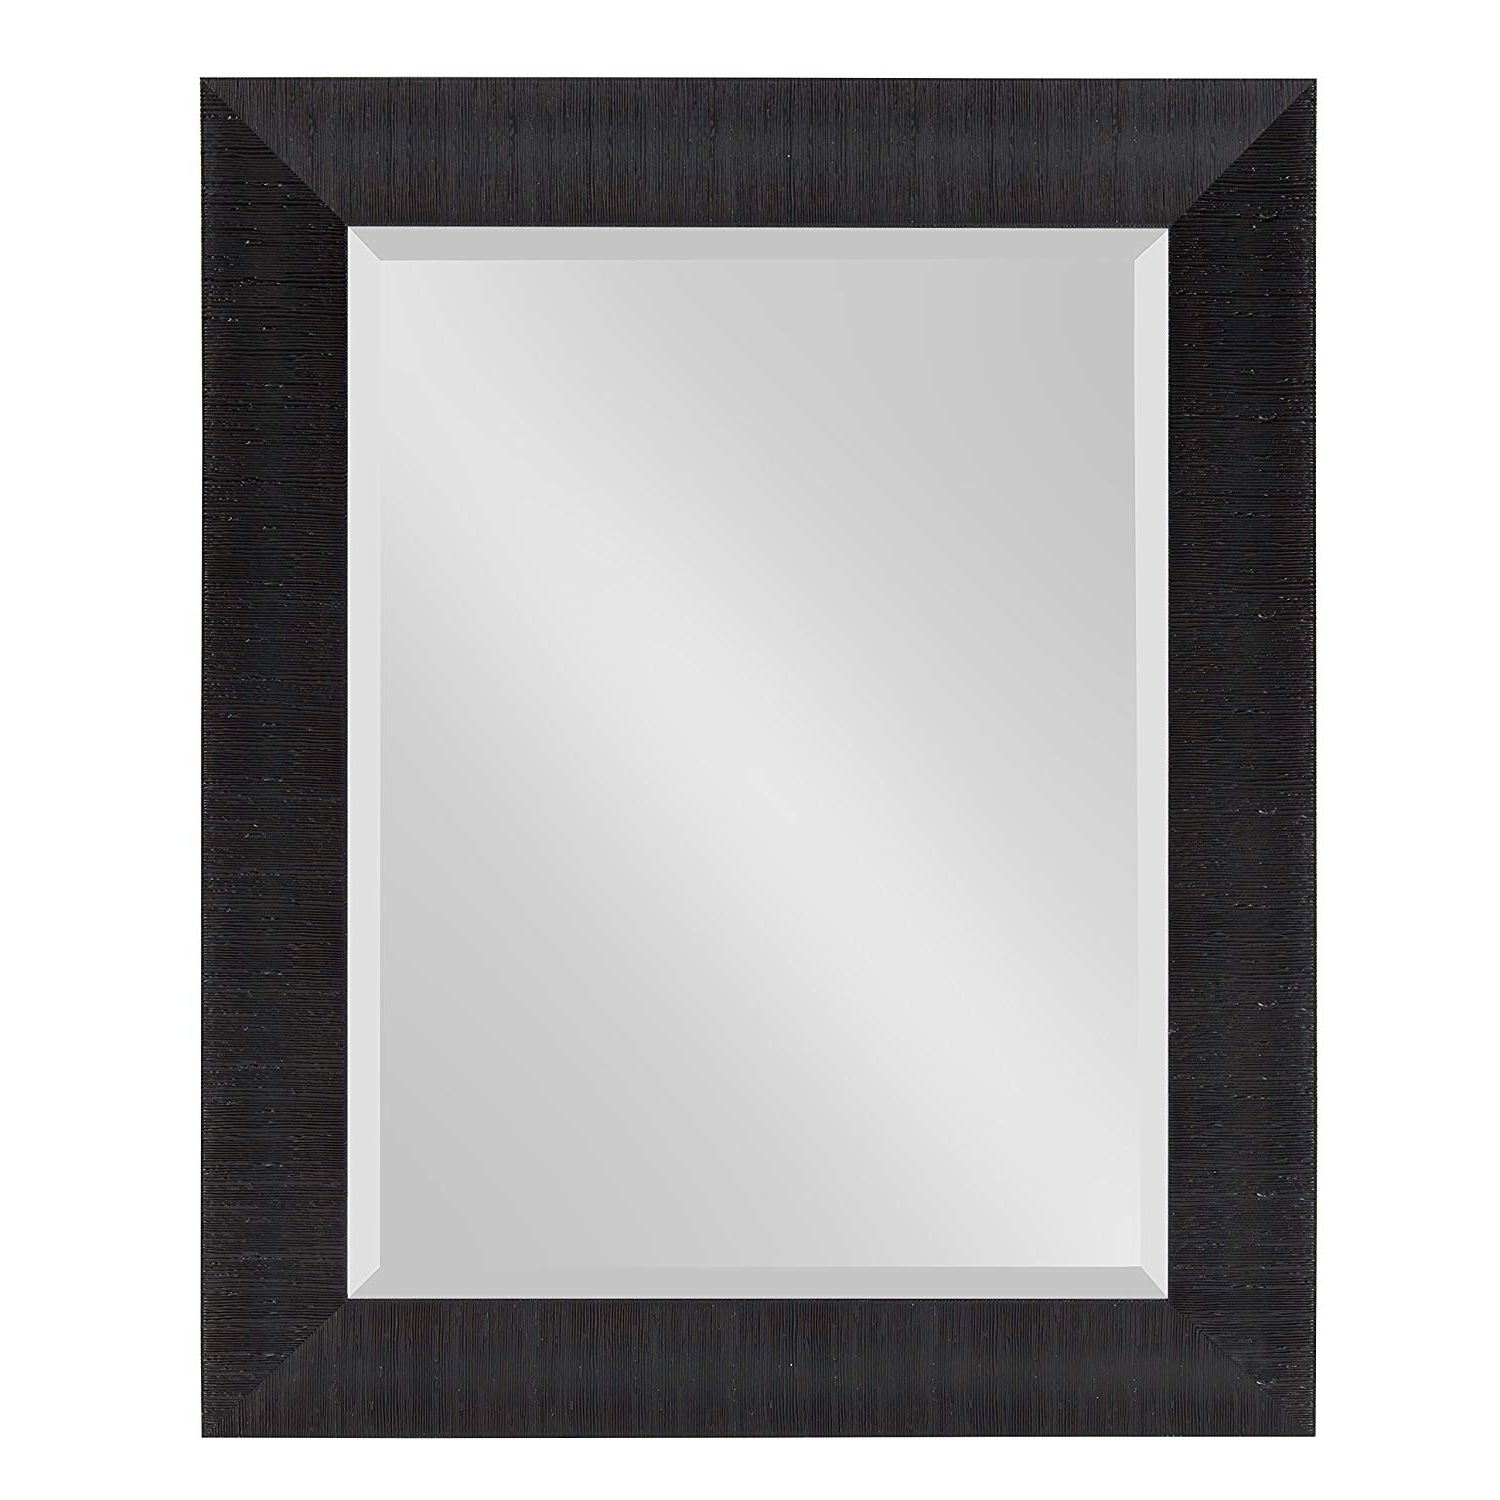 Kate And Laurel Reyna Framed Wall Mirror, 23.75X29.75 Black Pertaining To Best And Newest Black Rectangle Wall Mirrors (Gallery 20 of 20)